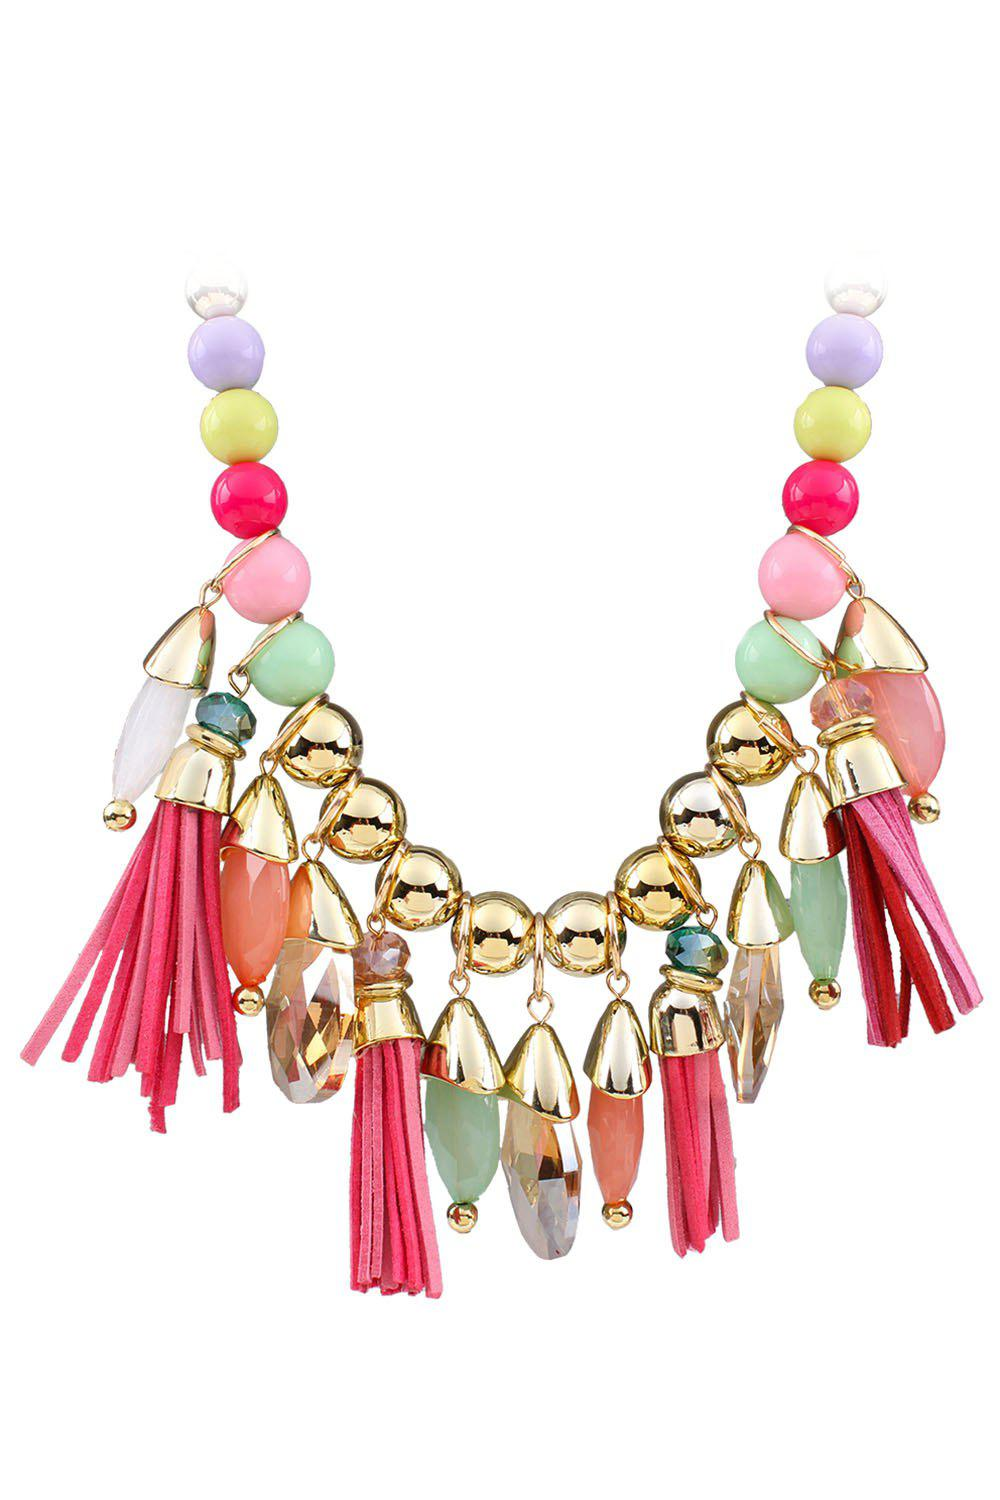 Ethnic Faux Leather Tassel Multi-Layered Necklace For Women